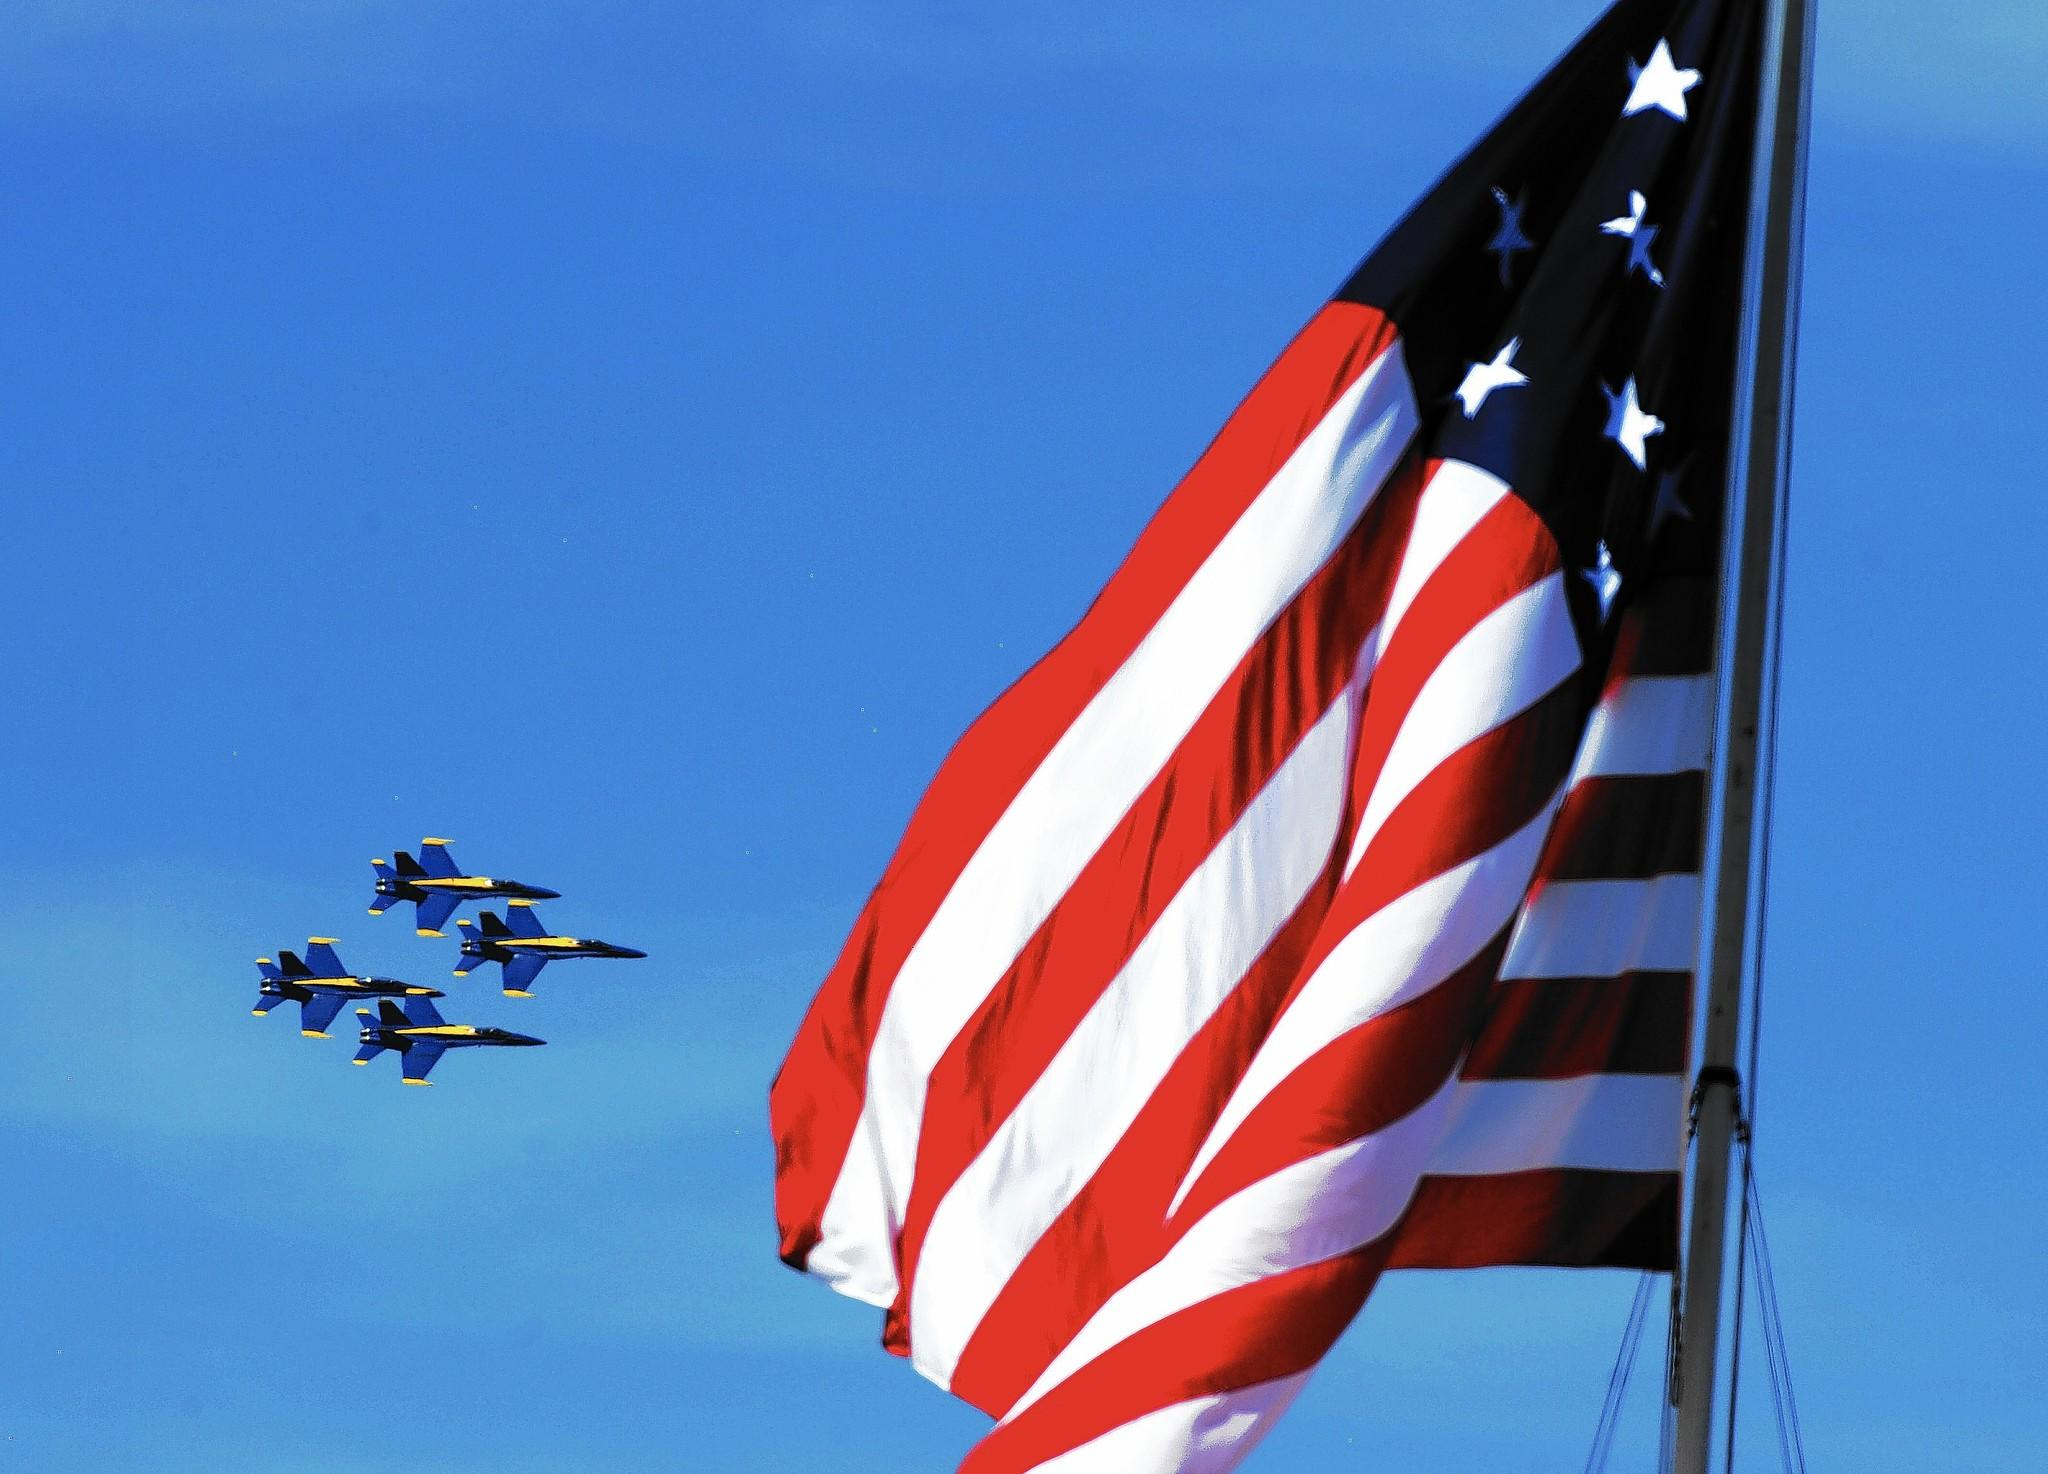 The U.S. Navy Blue Angels flight demonstration squadron fly their Boeing F/A-18 Hornets over the replica 1812 U.S. flag at Fort McHenry during a rehearsal for the Star-Spangled Spectacular Air Show